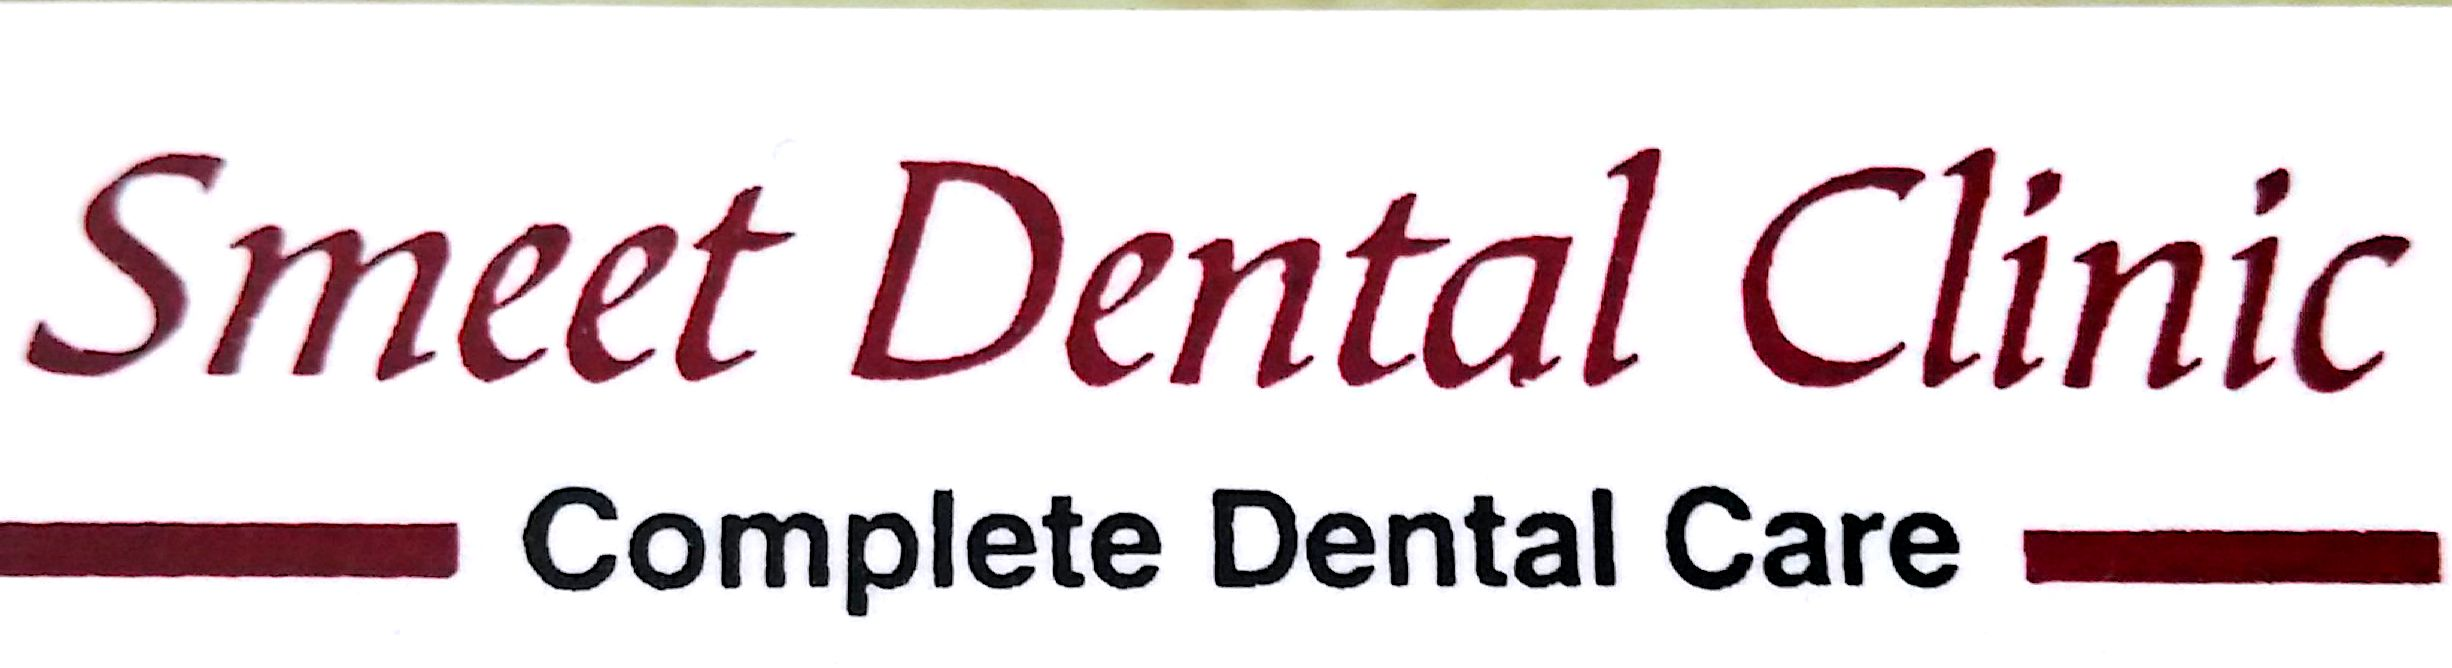 Smeet Dental Clinic